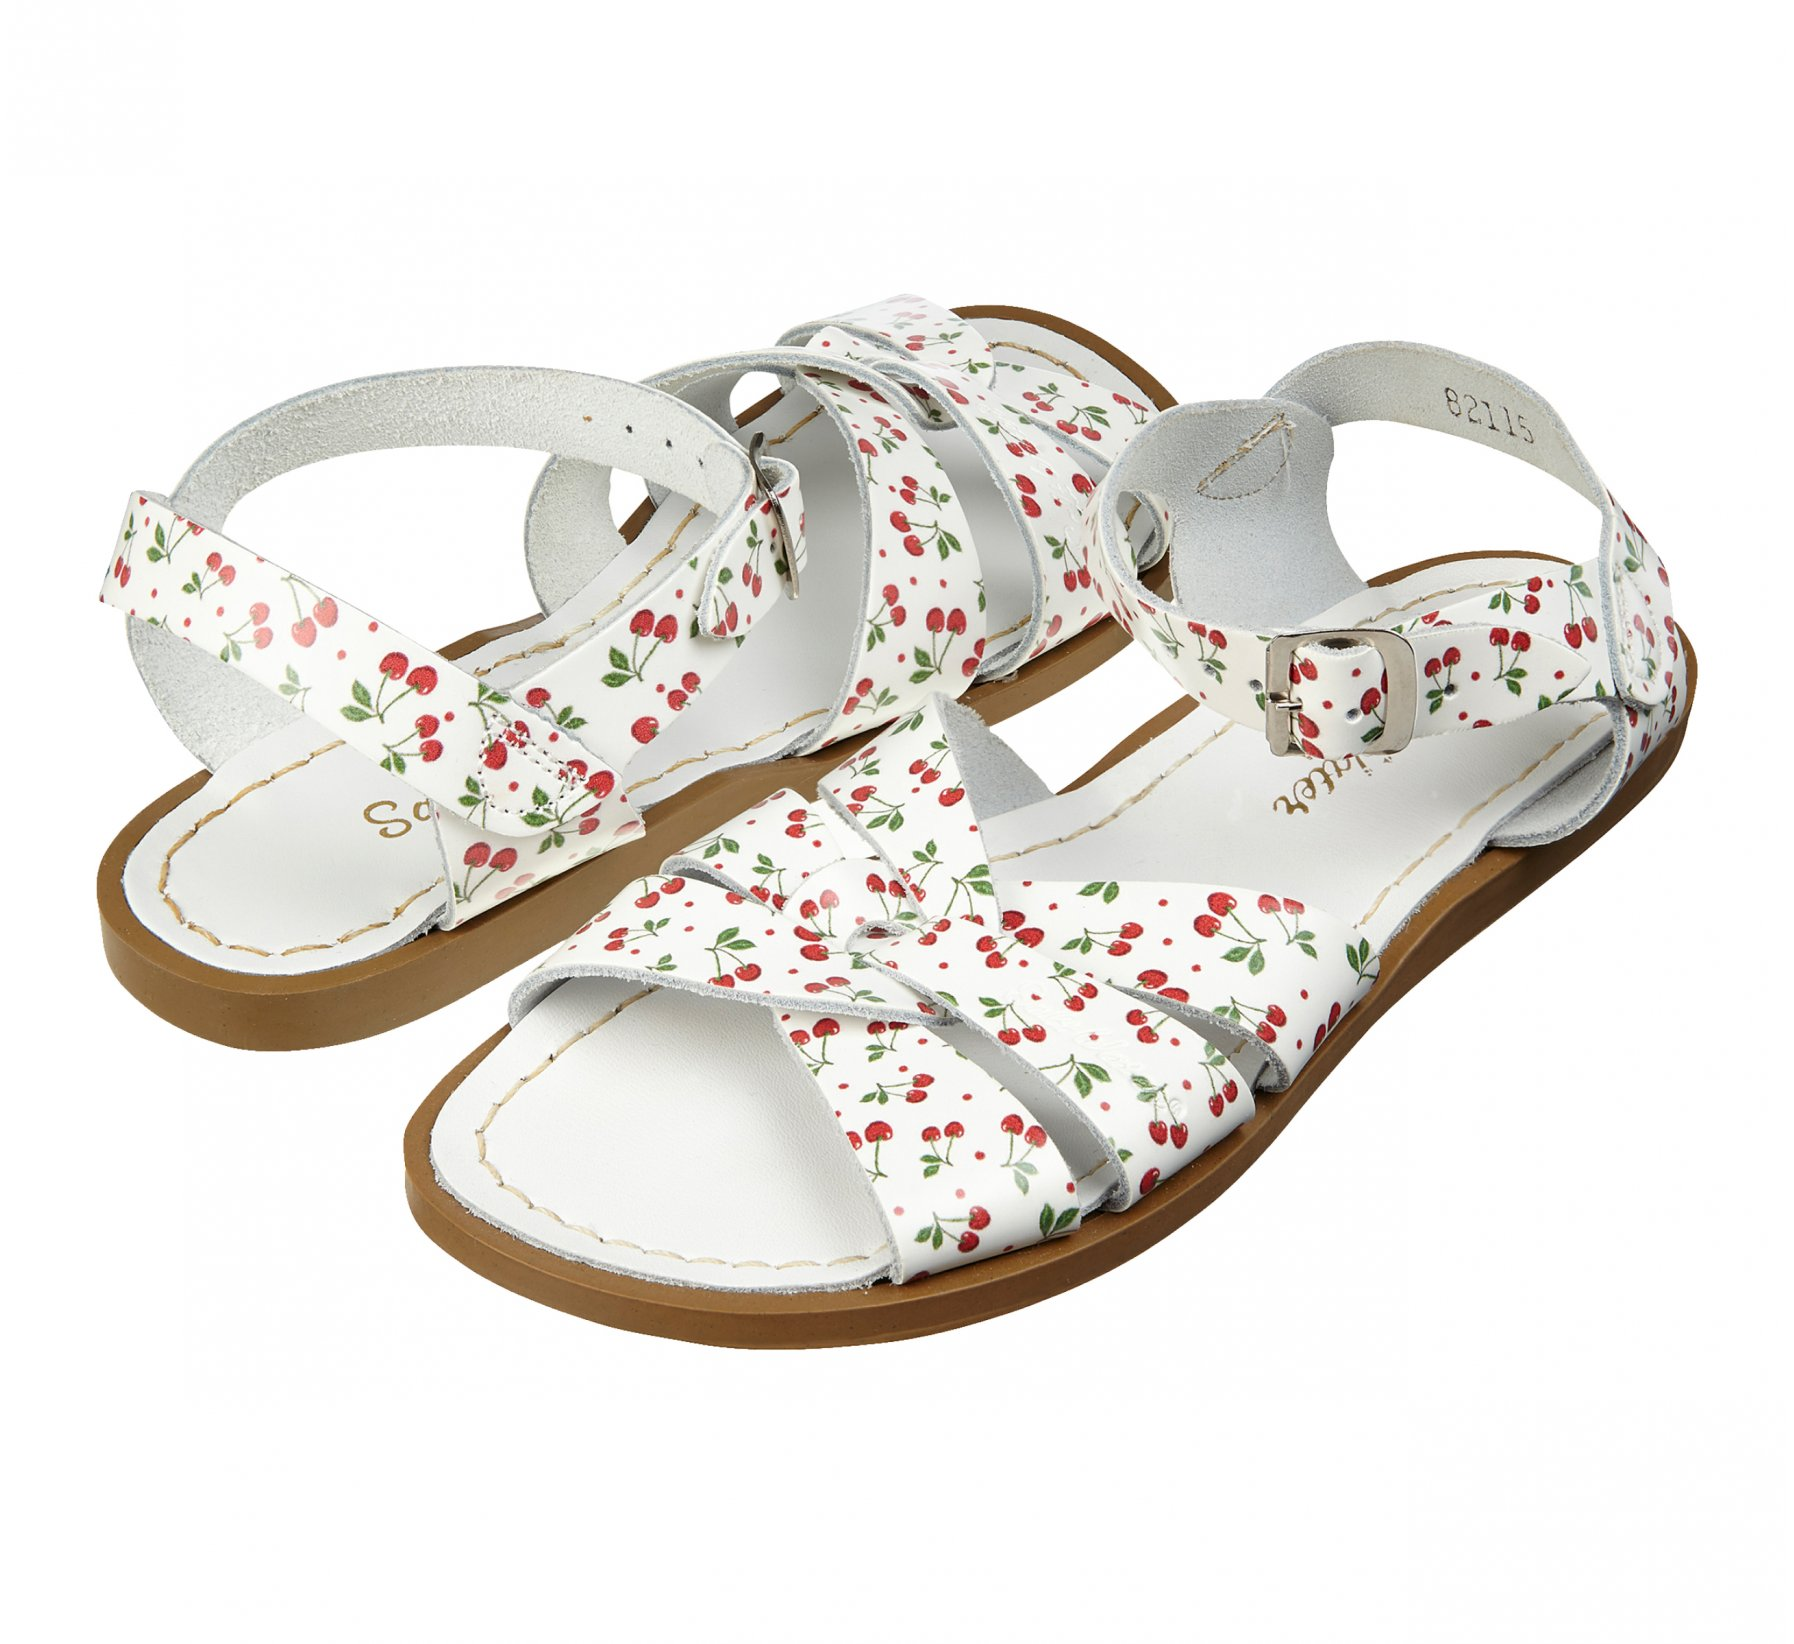 Original Cherry - Salt Water Sandals